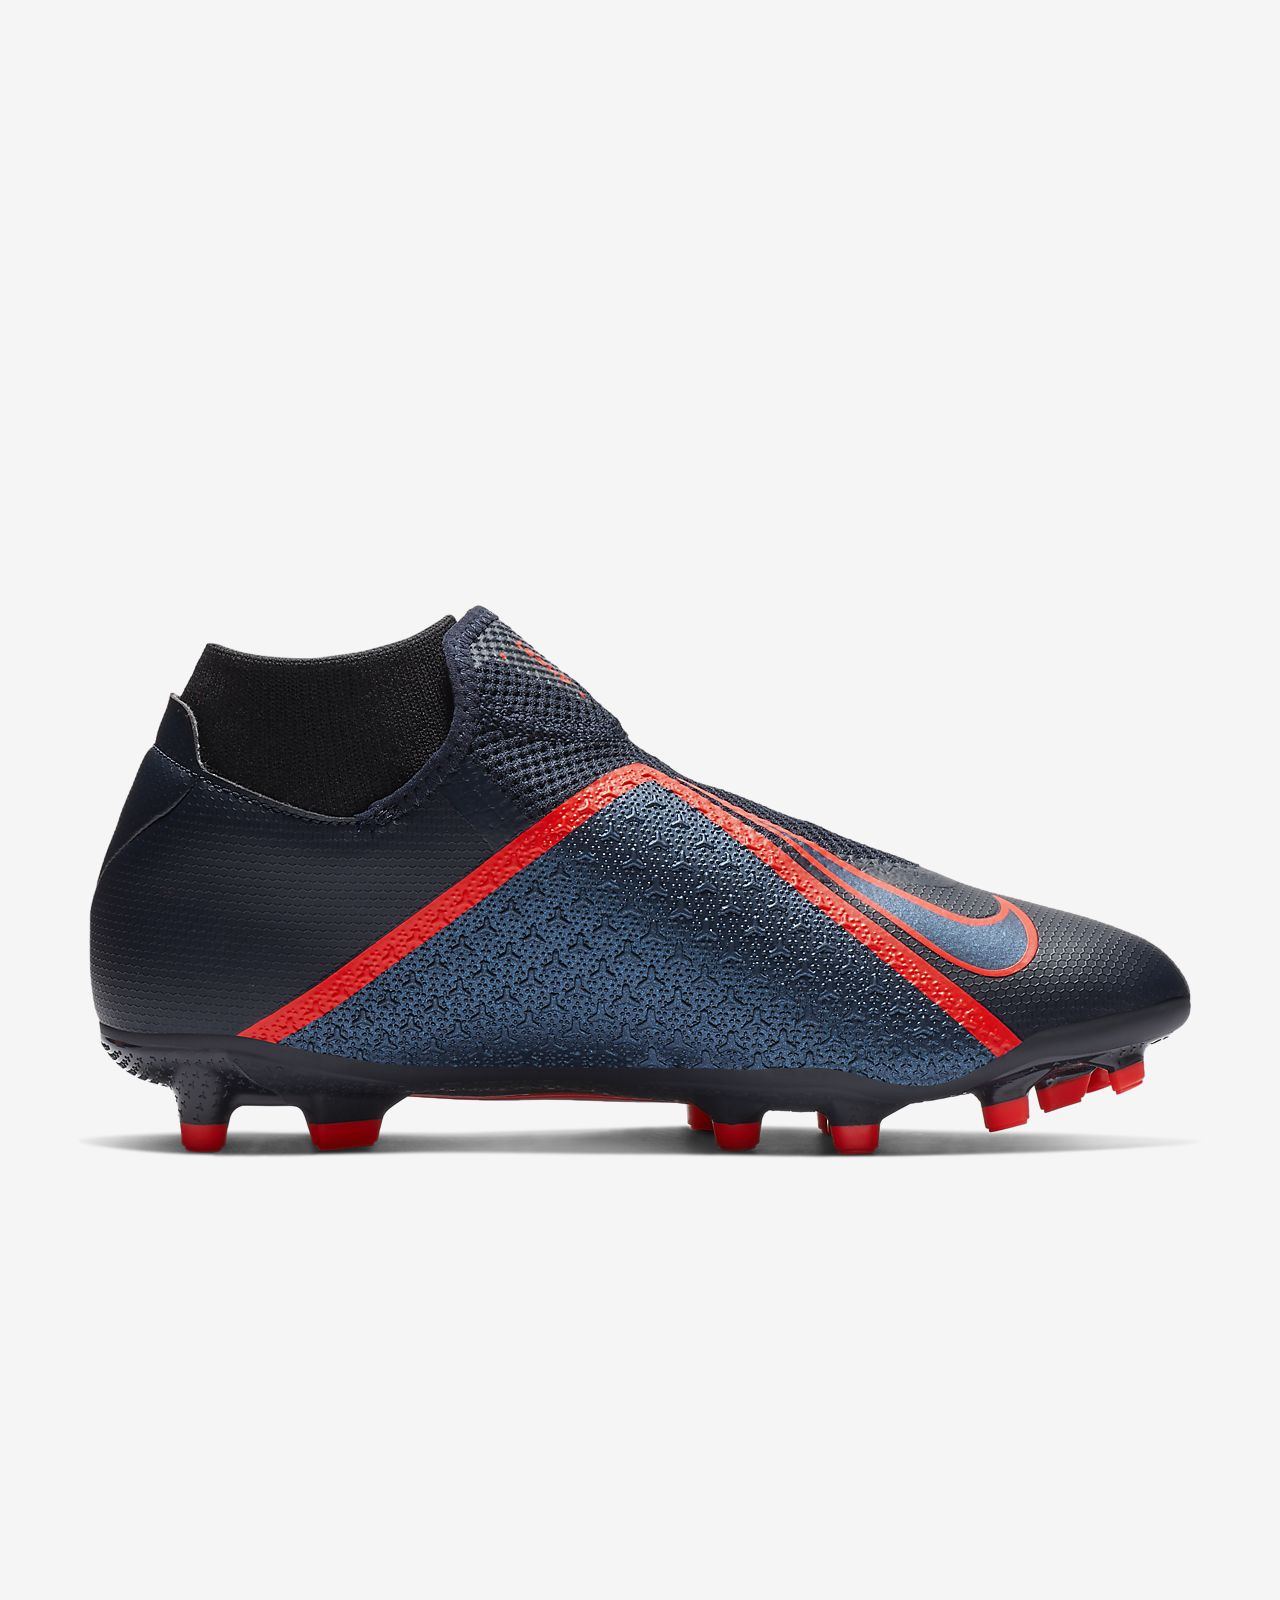 09c9f484cdf Nike PhantomVSN Academy Dynamic Fit MG Multi-Ground Football Boot ...